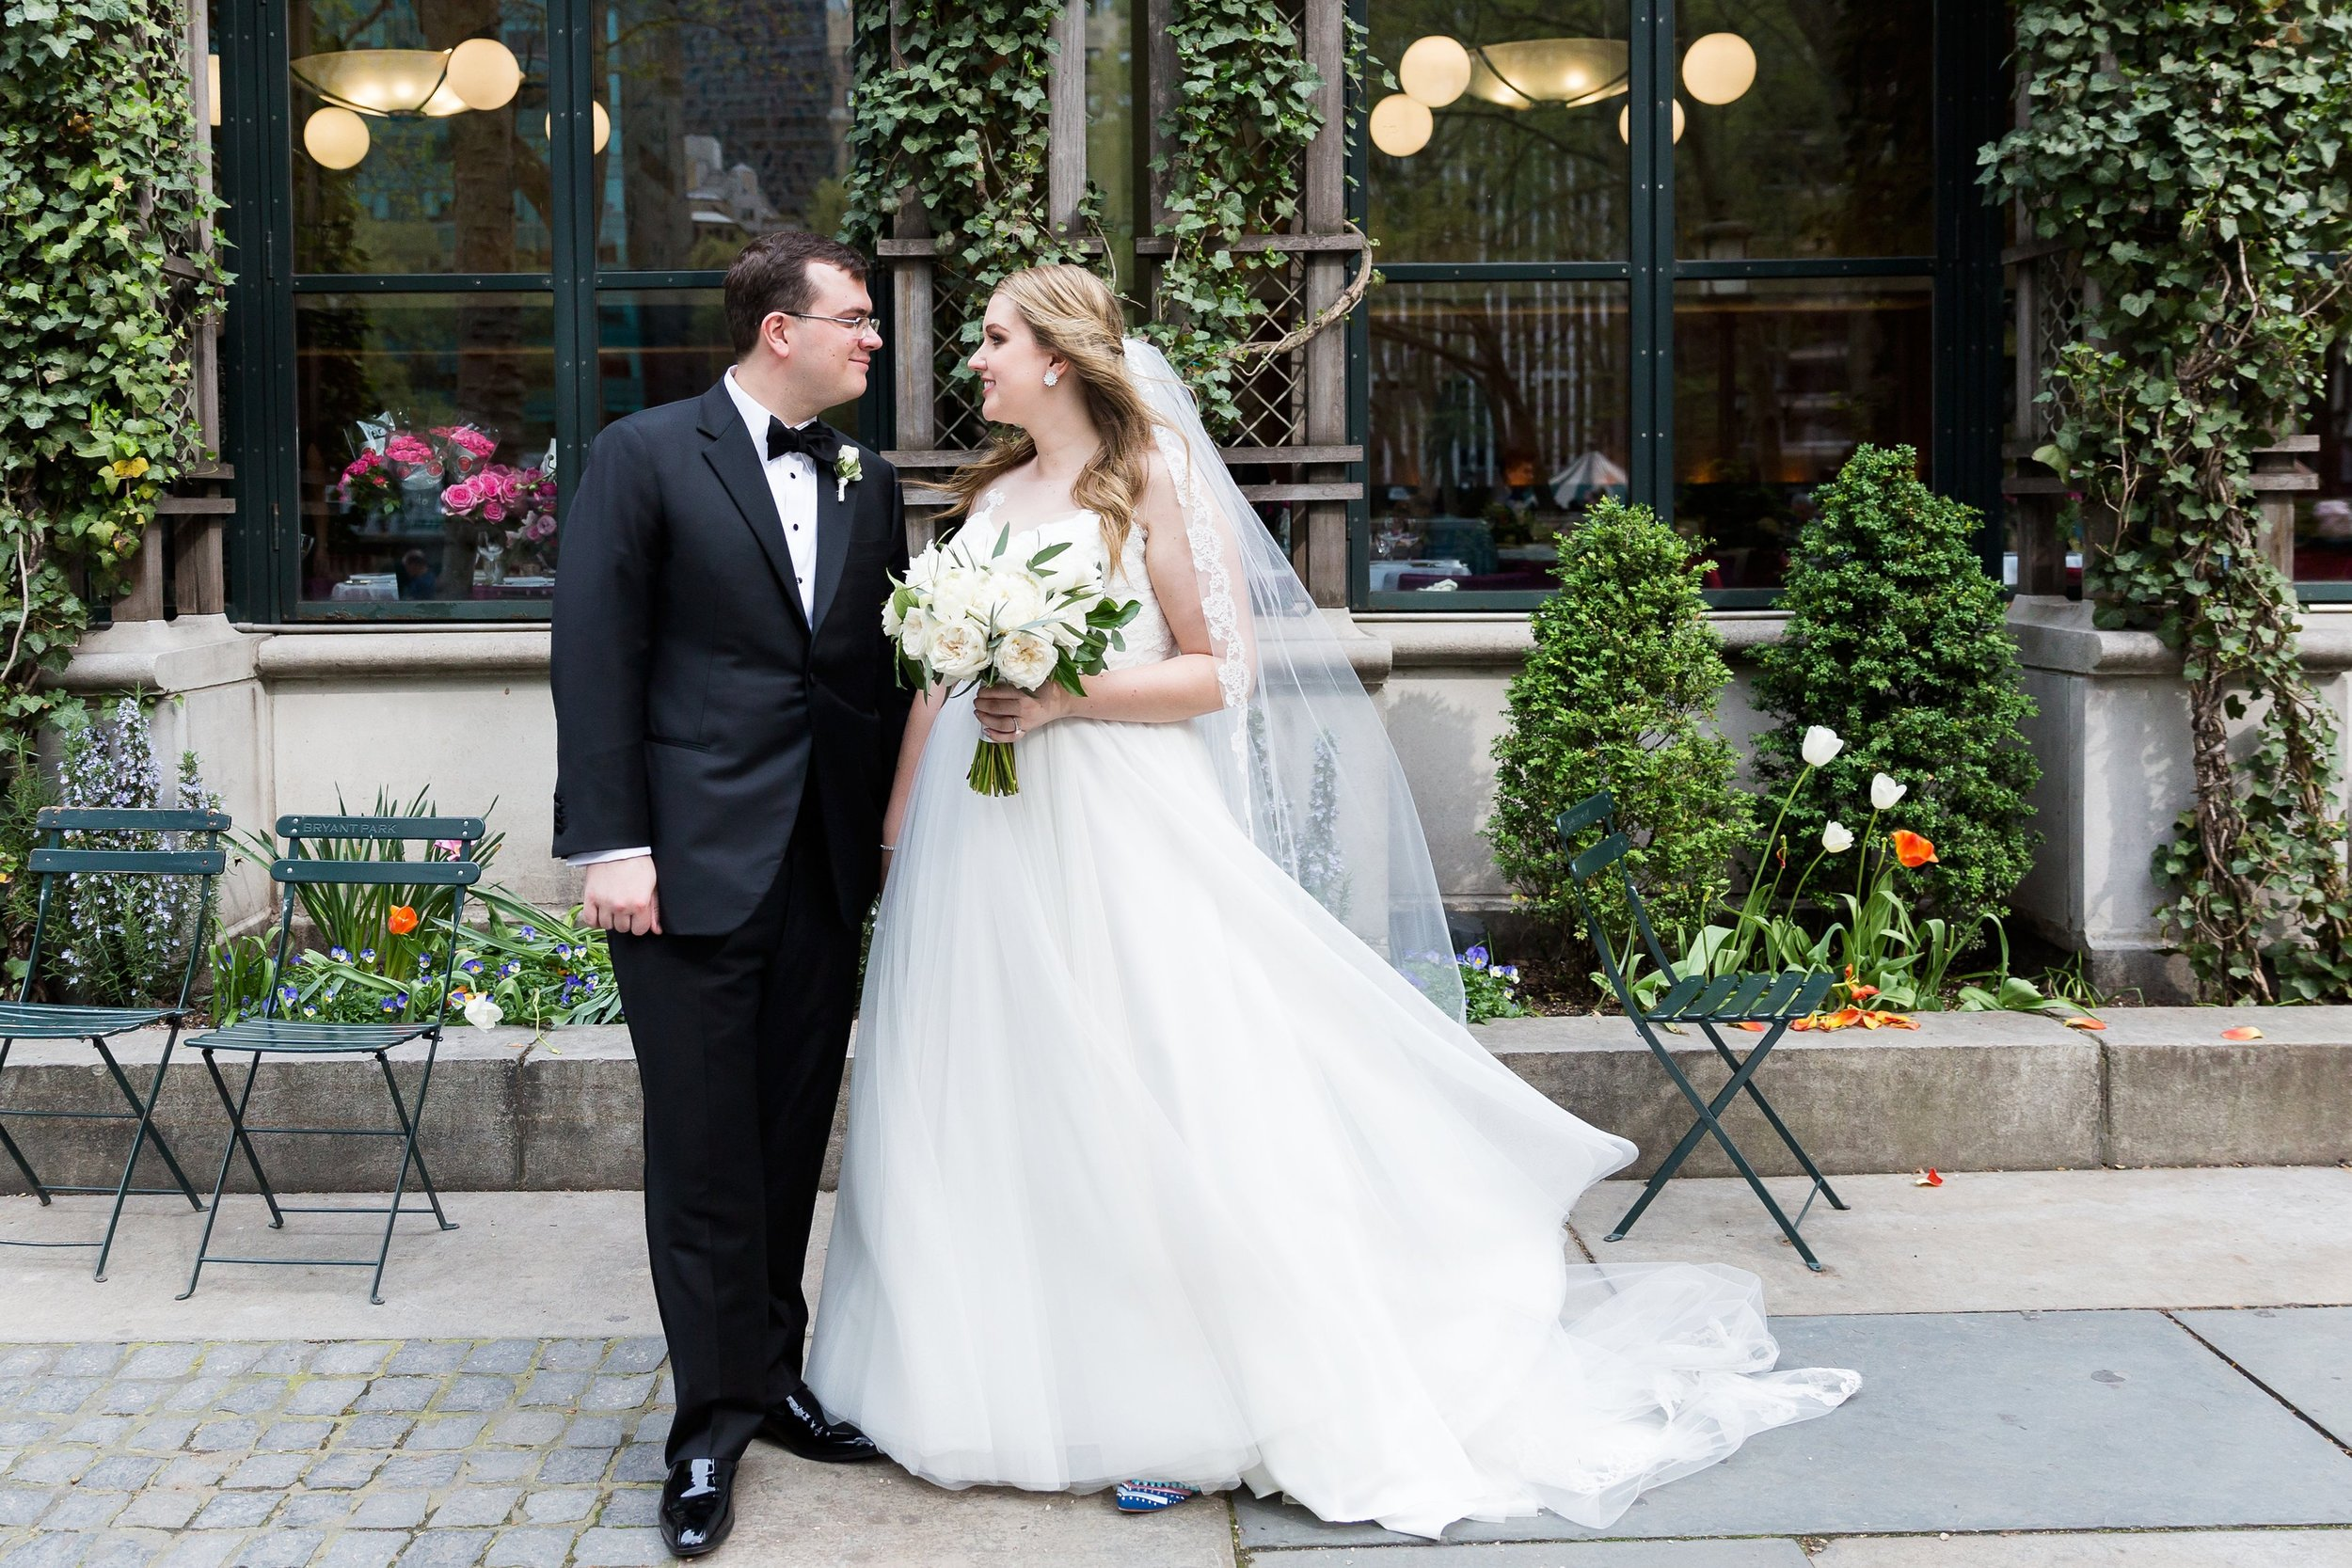 the knot - A Bright Modern Wedding at the Bryant Park Grill in NYC